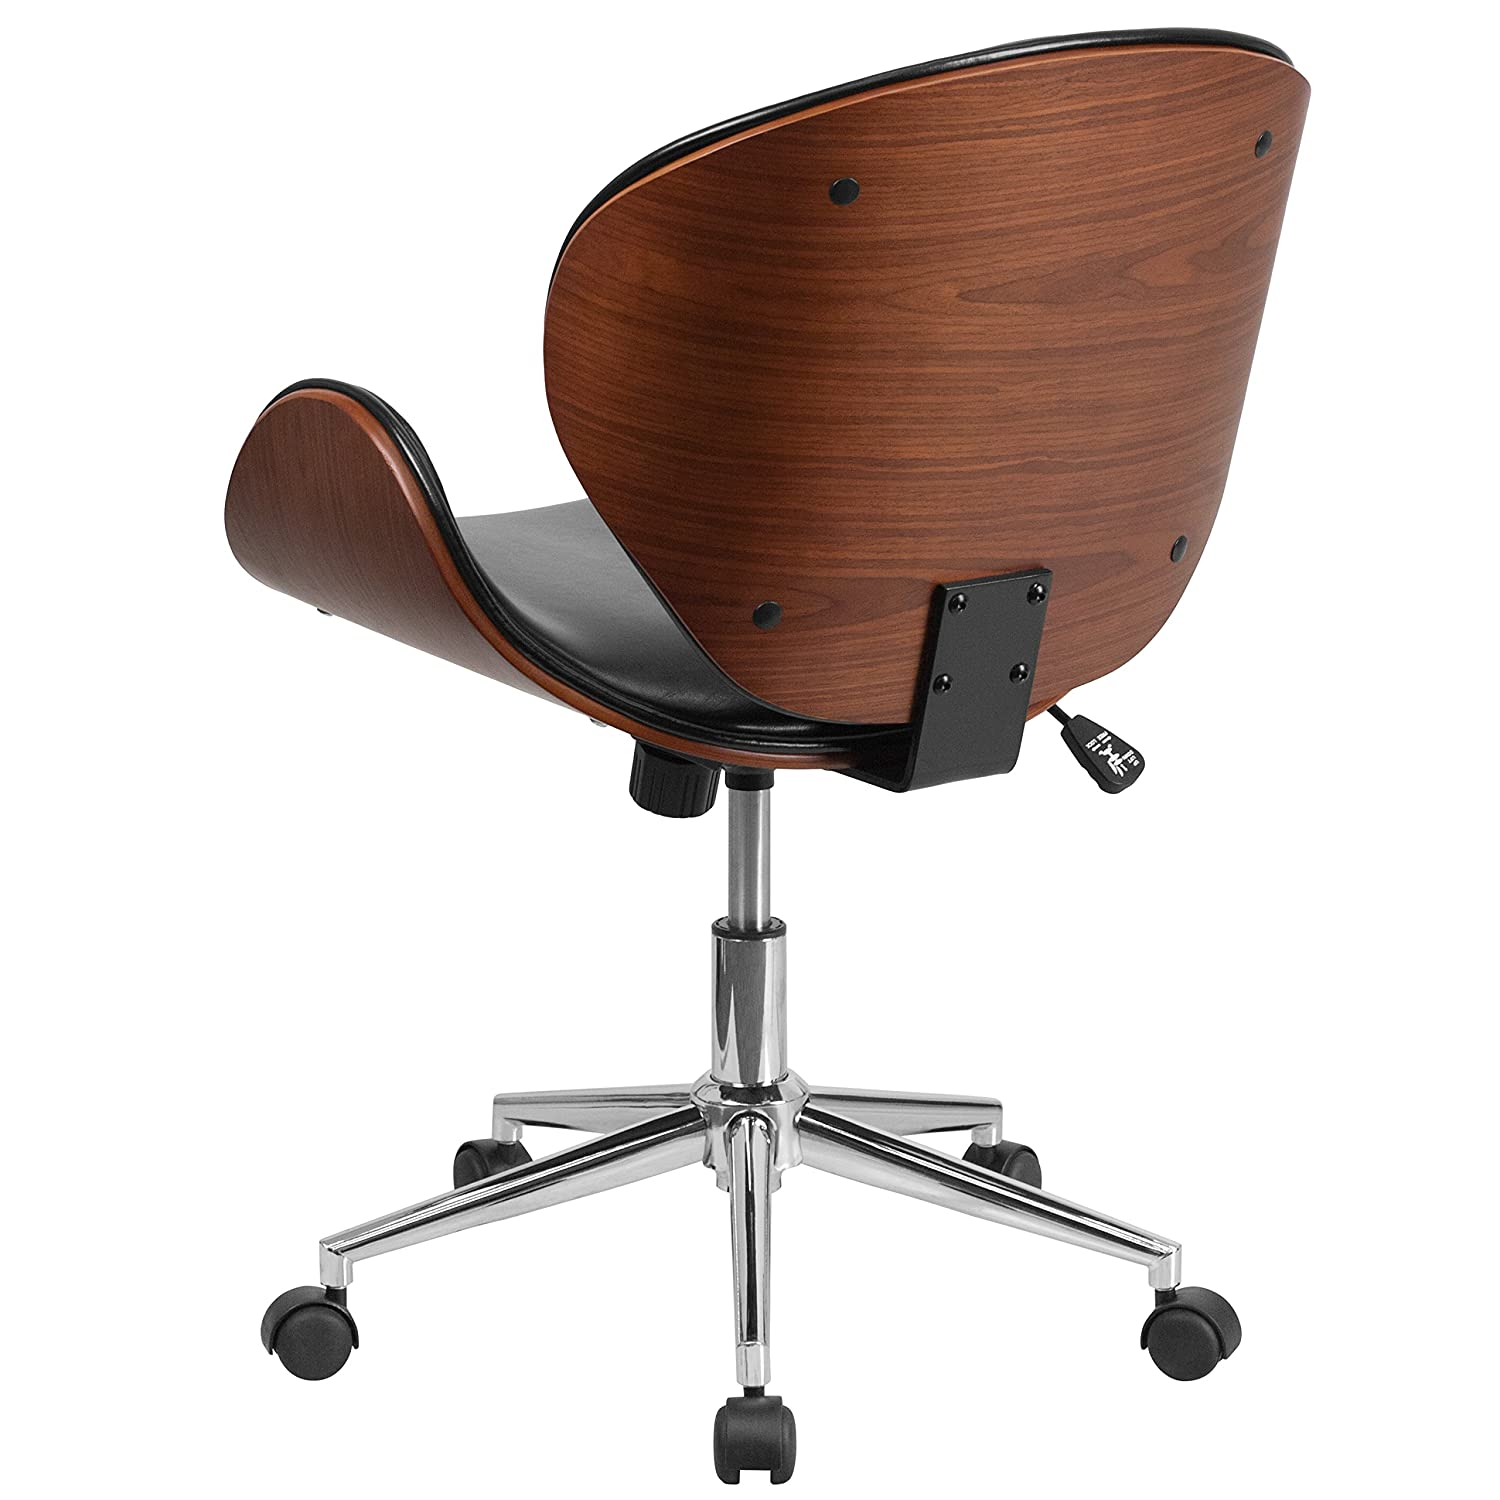 leather office chair modern. Amazon.com: Flash Furniture Mid-Back Walnut Wood Swivel Conference Chair In Black Leather: Kitchen \u0026 Dining Leather Office Modern